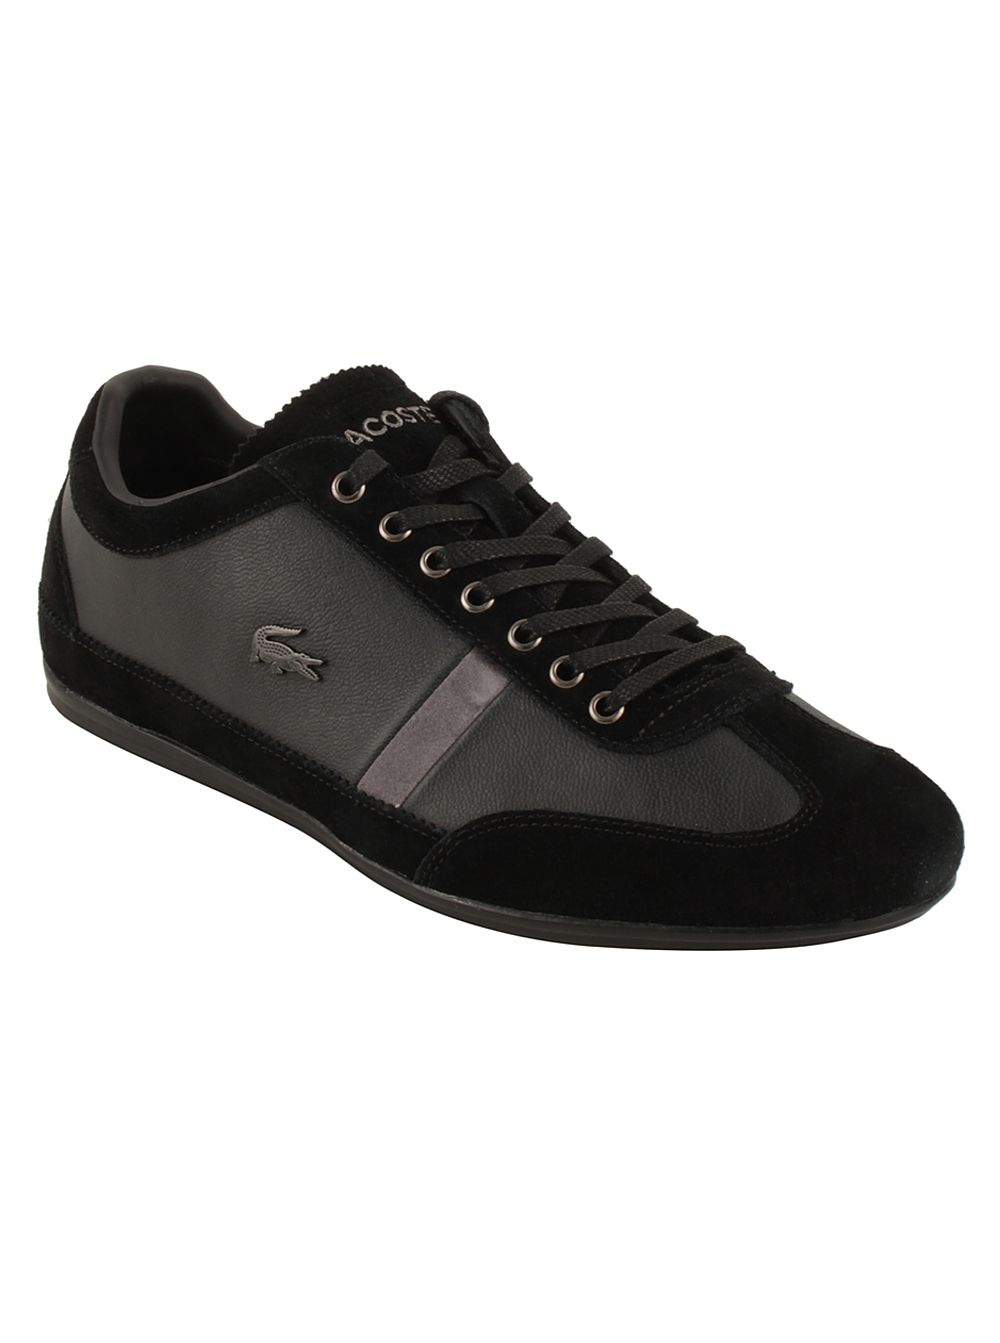 Lacoste Still Black A Stylish Men's 22 In Misano Is The rwHqrBxa